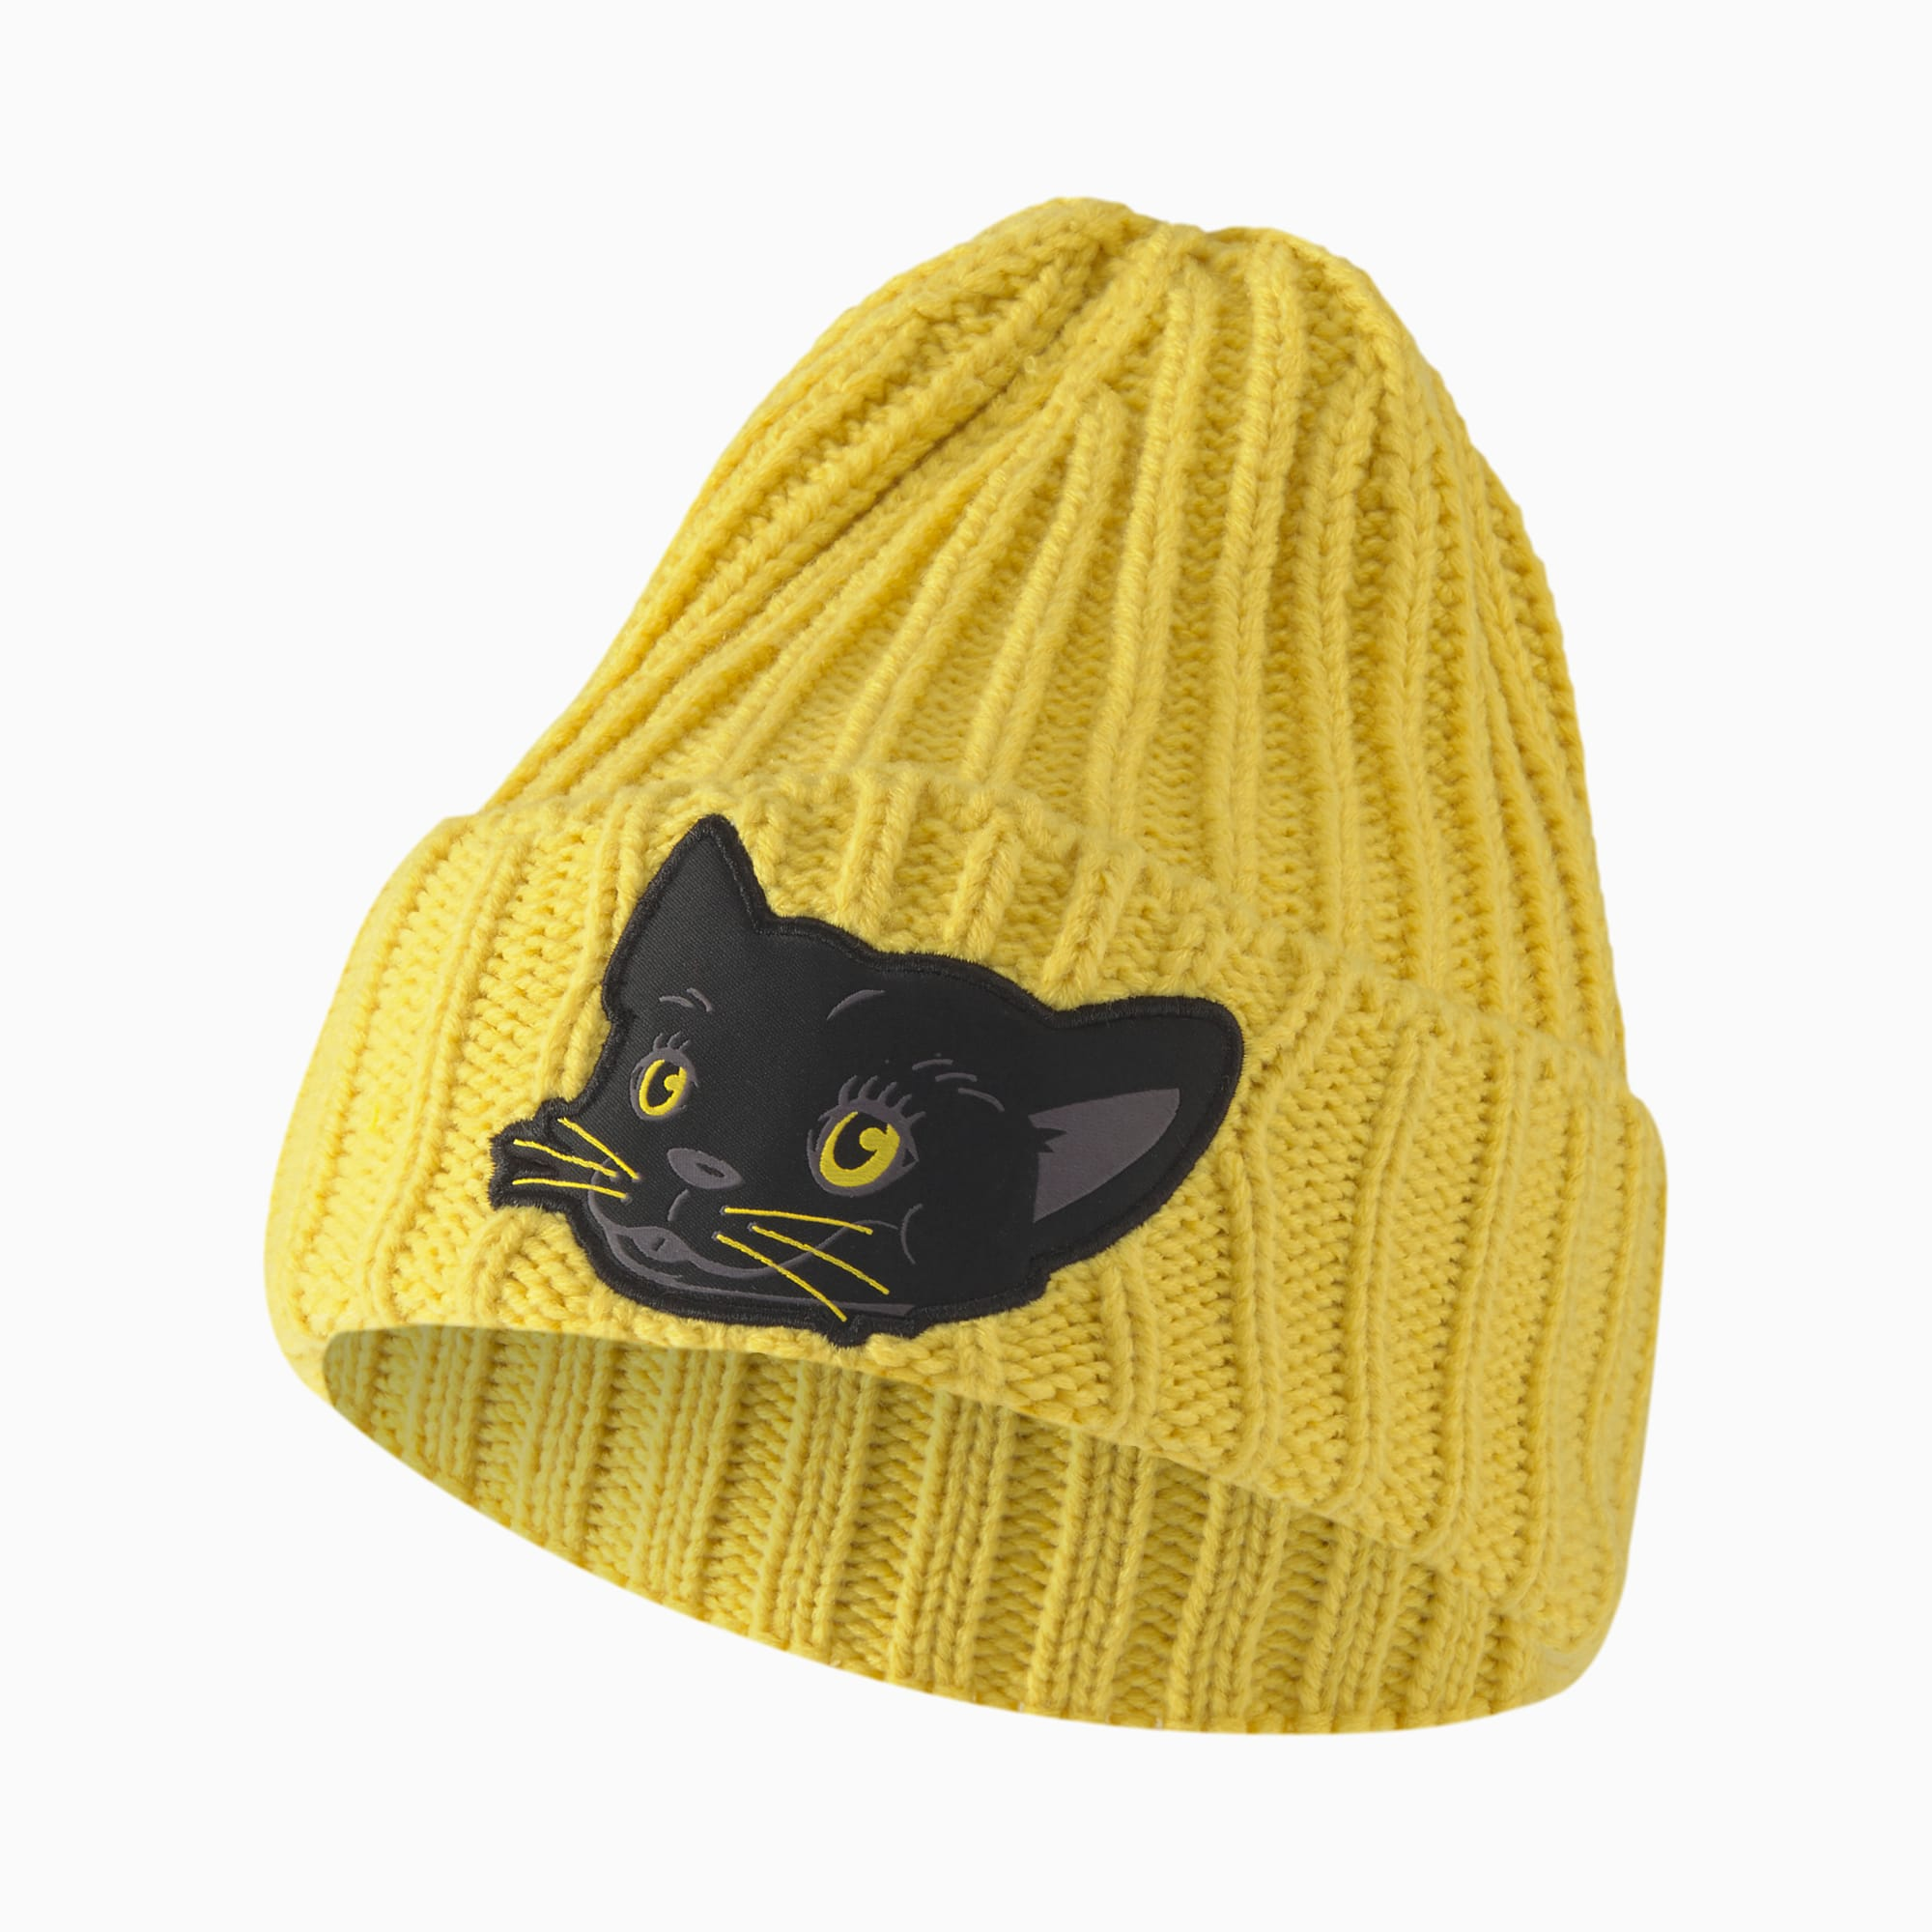 PUMA Animal Kinder Beanie | Mit Aucun 022976_02_Youth